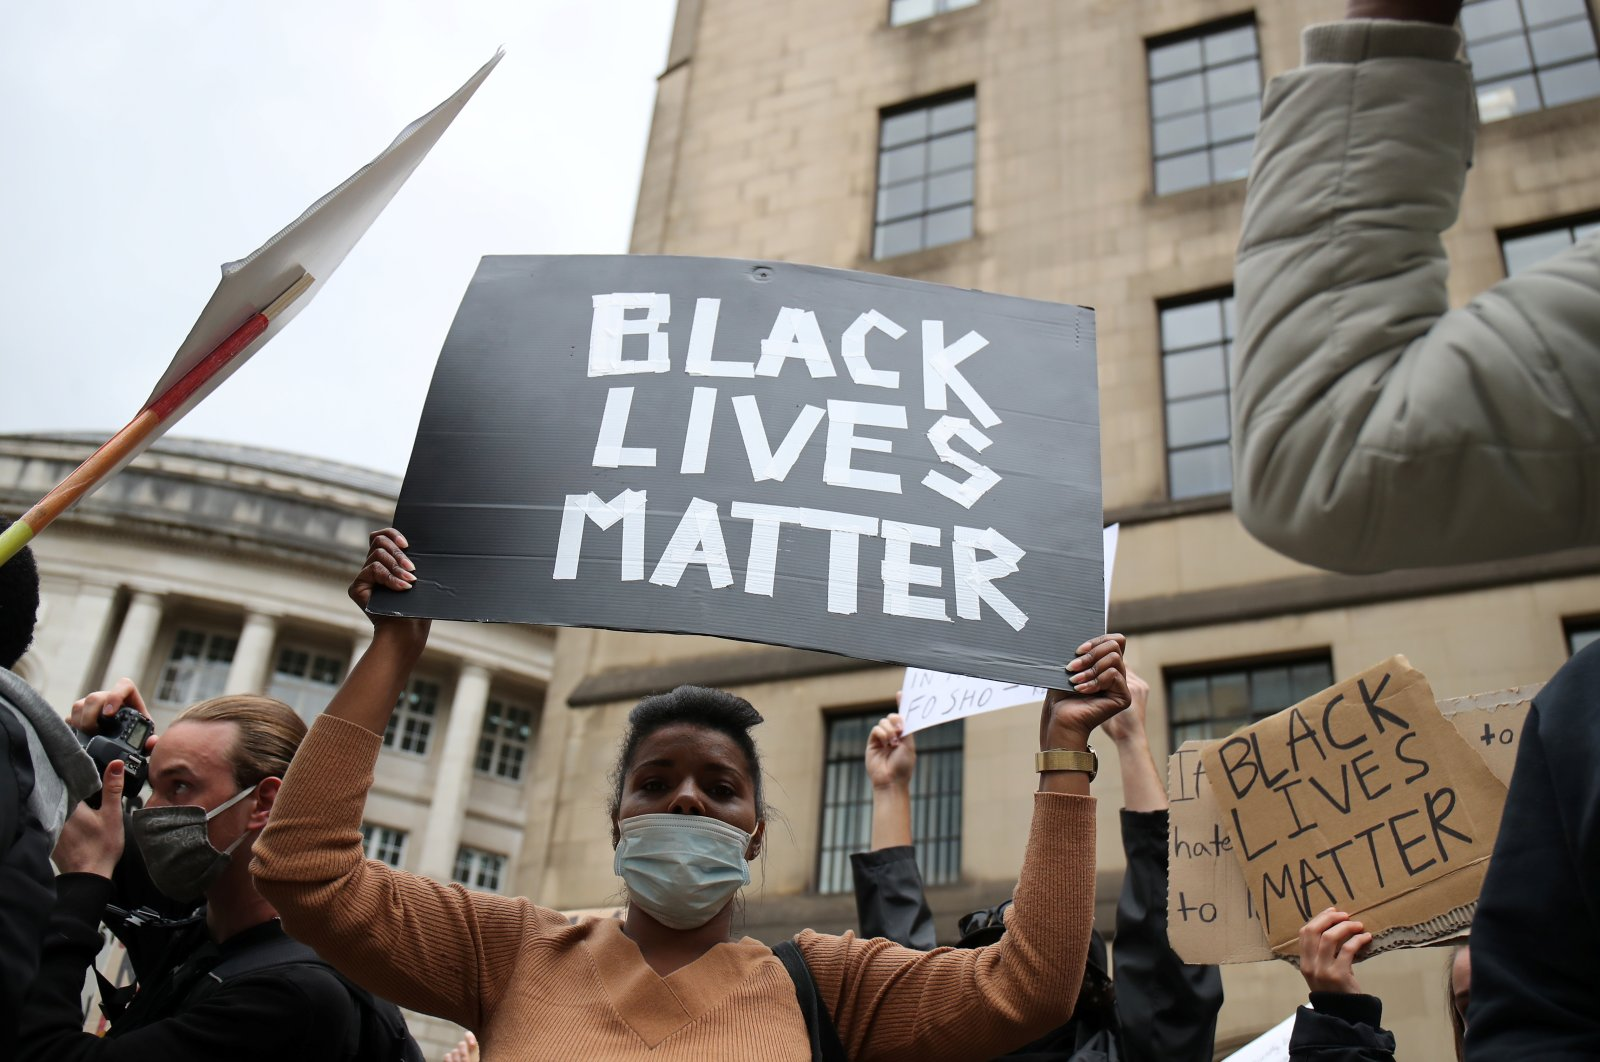 A demonstrator holds a sign during a Black Lives Matter protest in Manchester, following the death of George Floyd who died in police custody in Minneapolis, Manchester, Britain, June 7, 2020. (Reuters Photo)